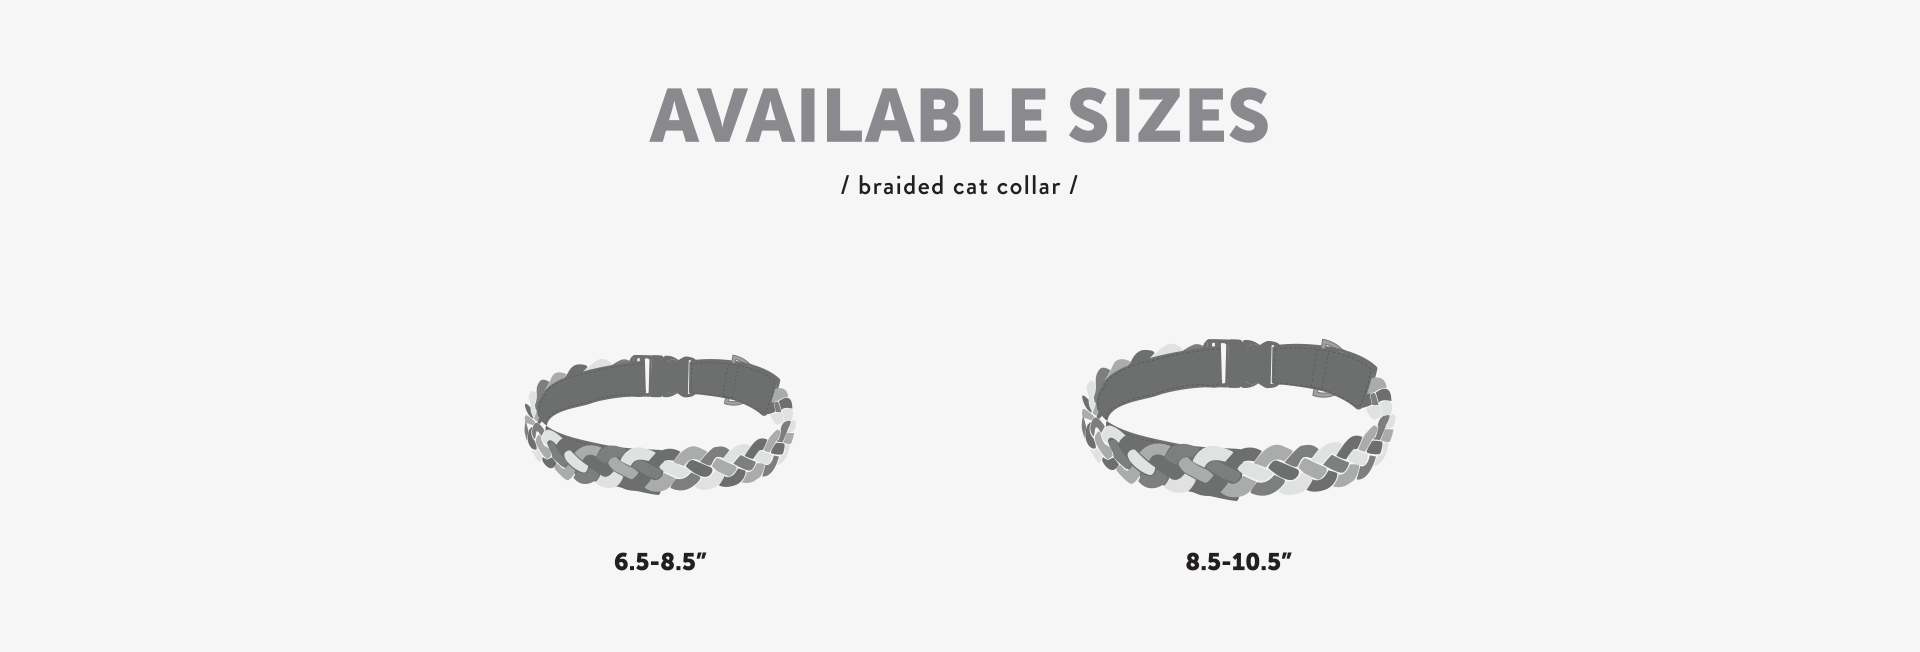 dimensions-braided-collar-for-cats-english